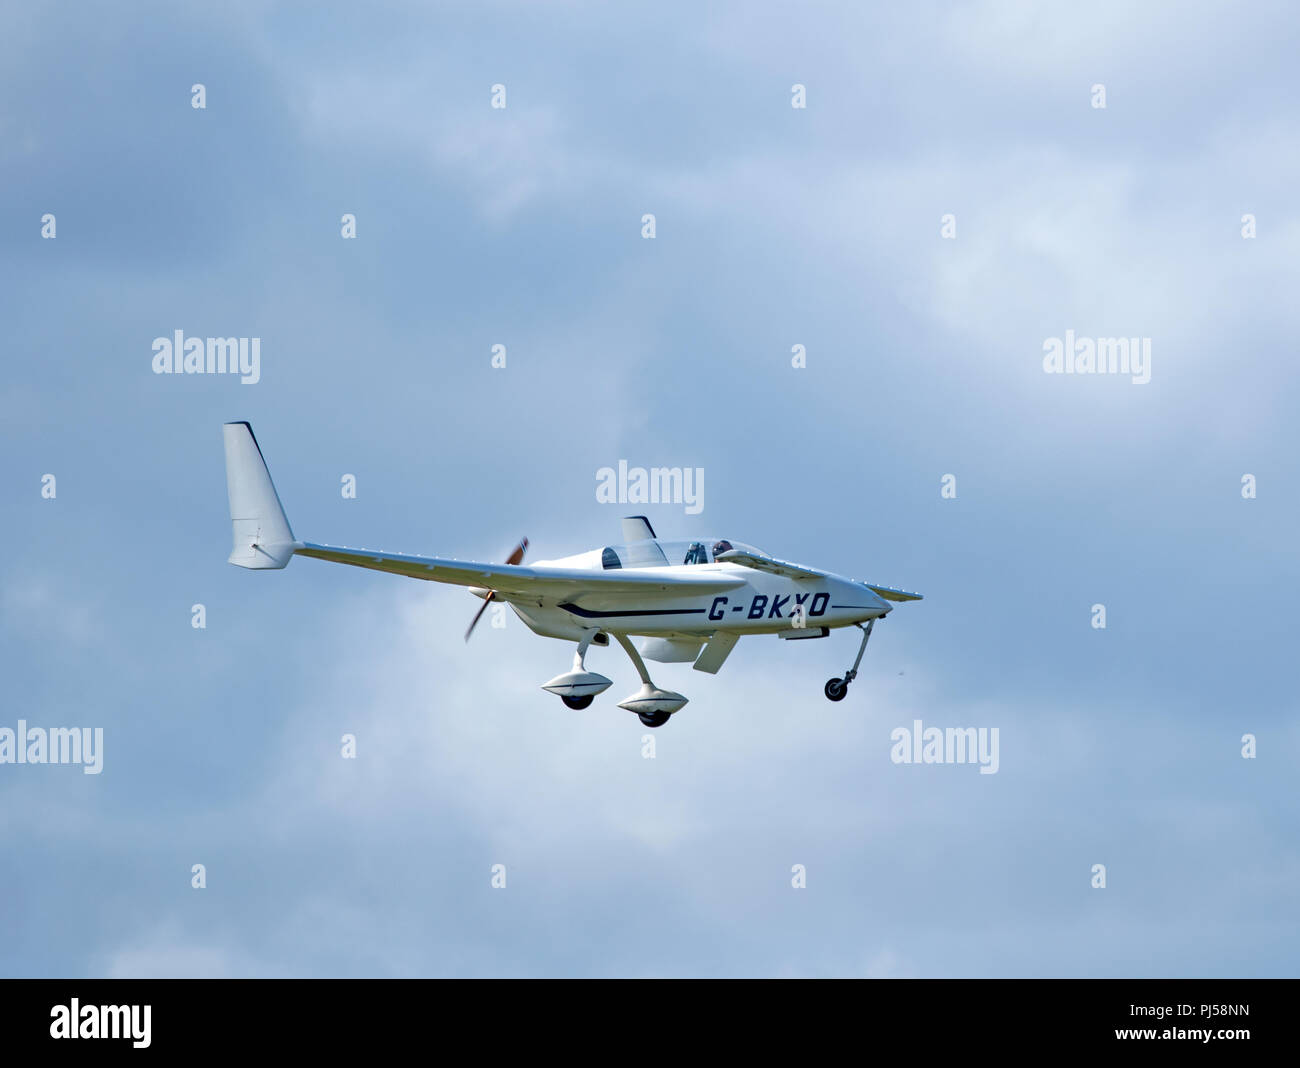 A Model 61 Long EZ home built aircraft from the Rutan factory Design in the USA departing from Inverness, Scotland. - Stock Image